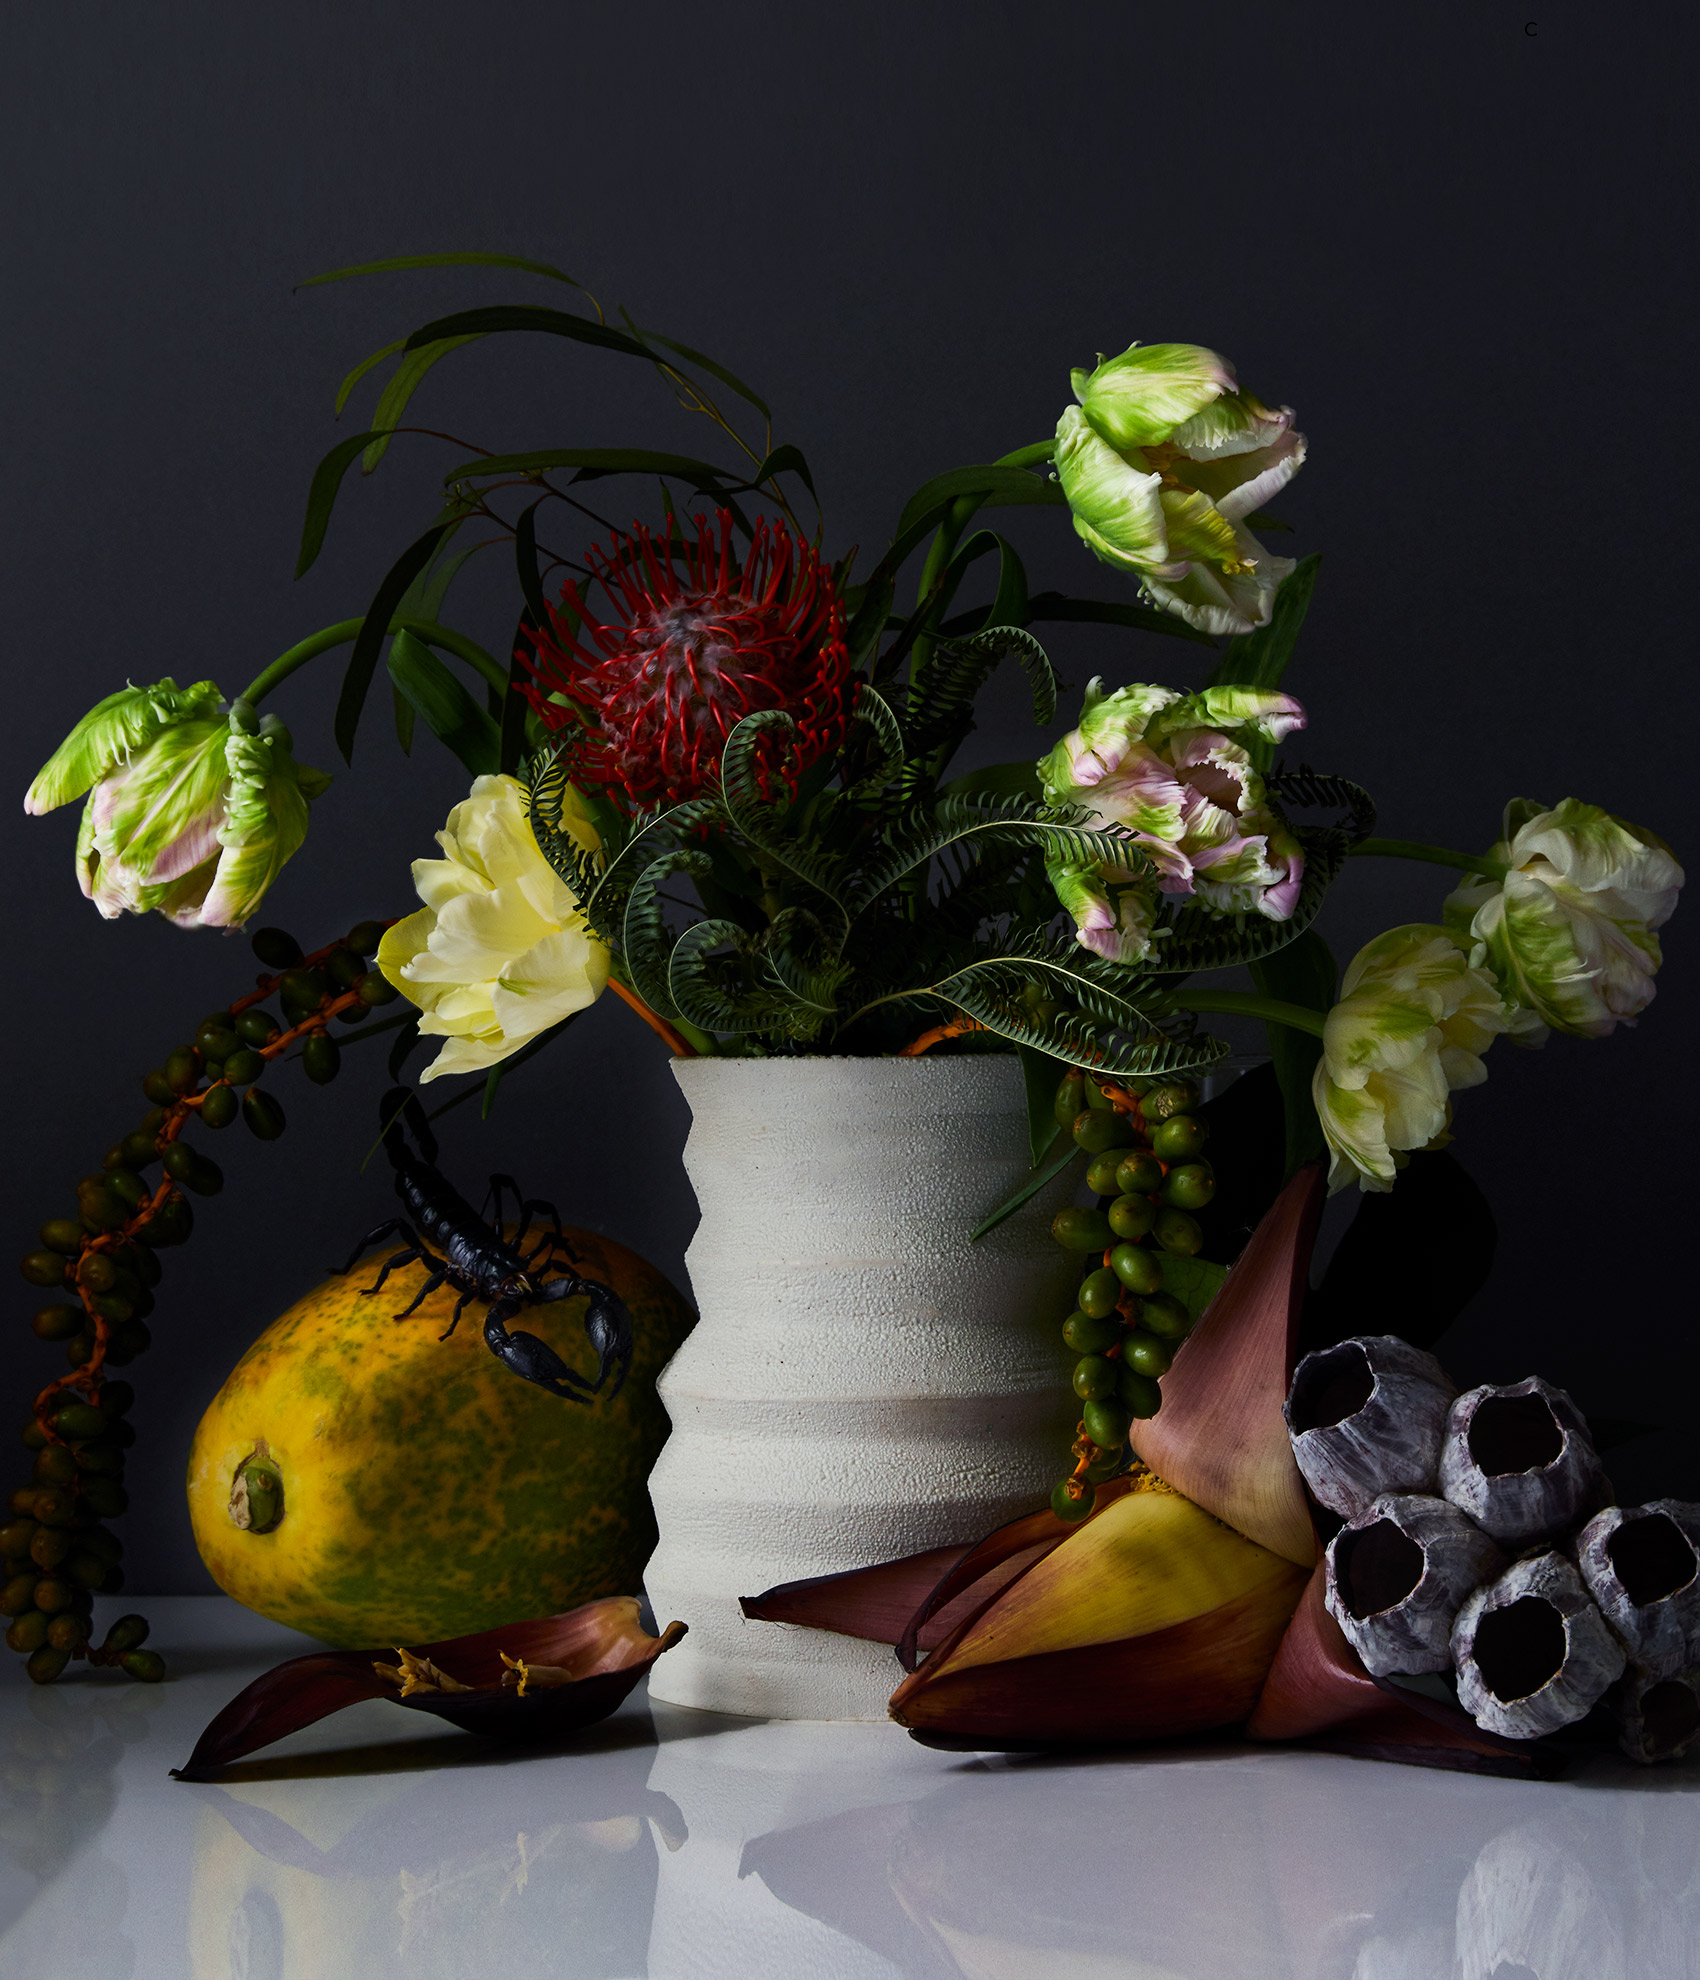 Oddbouquet-Floral-Stilllife-Photographer-George-Barberis.jpg